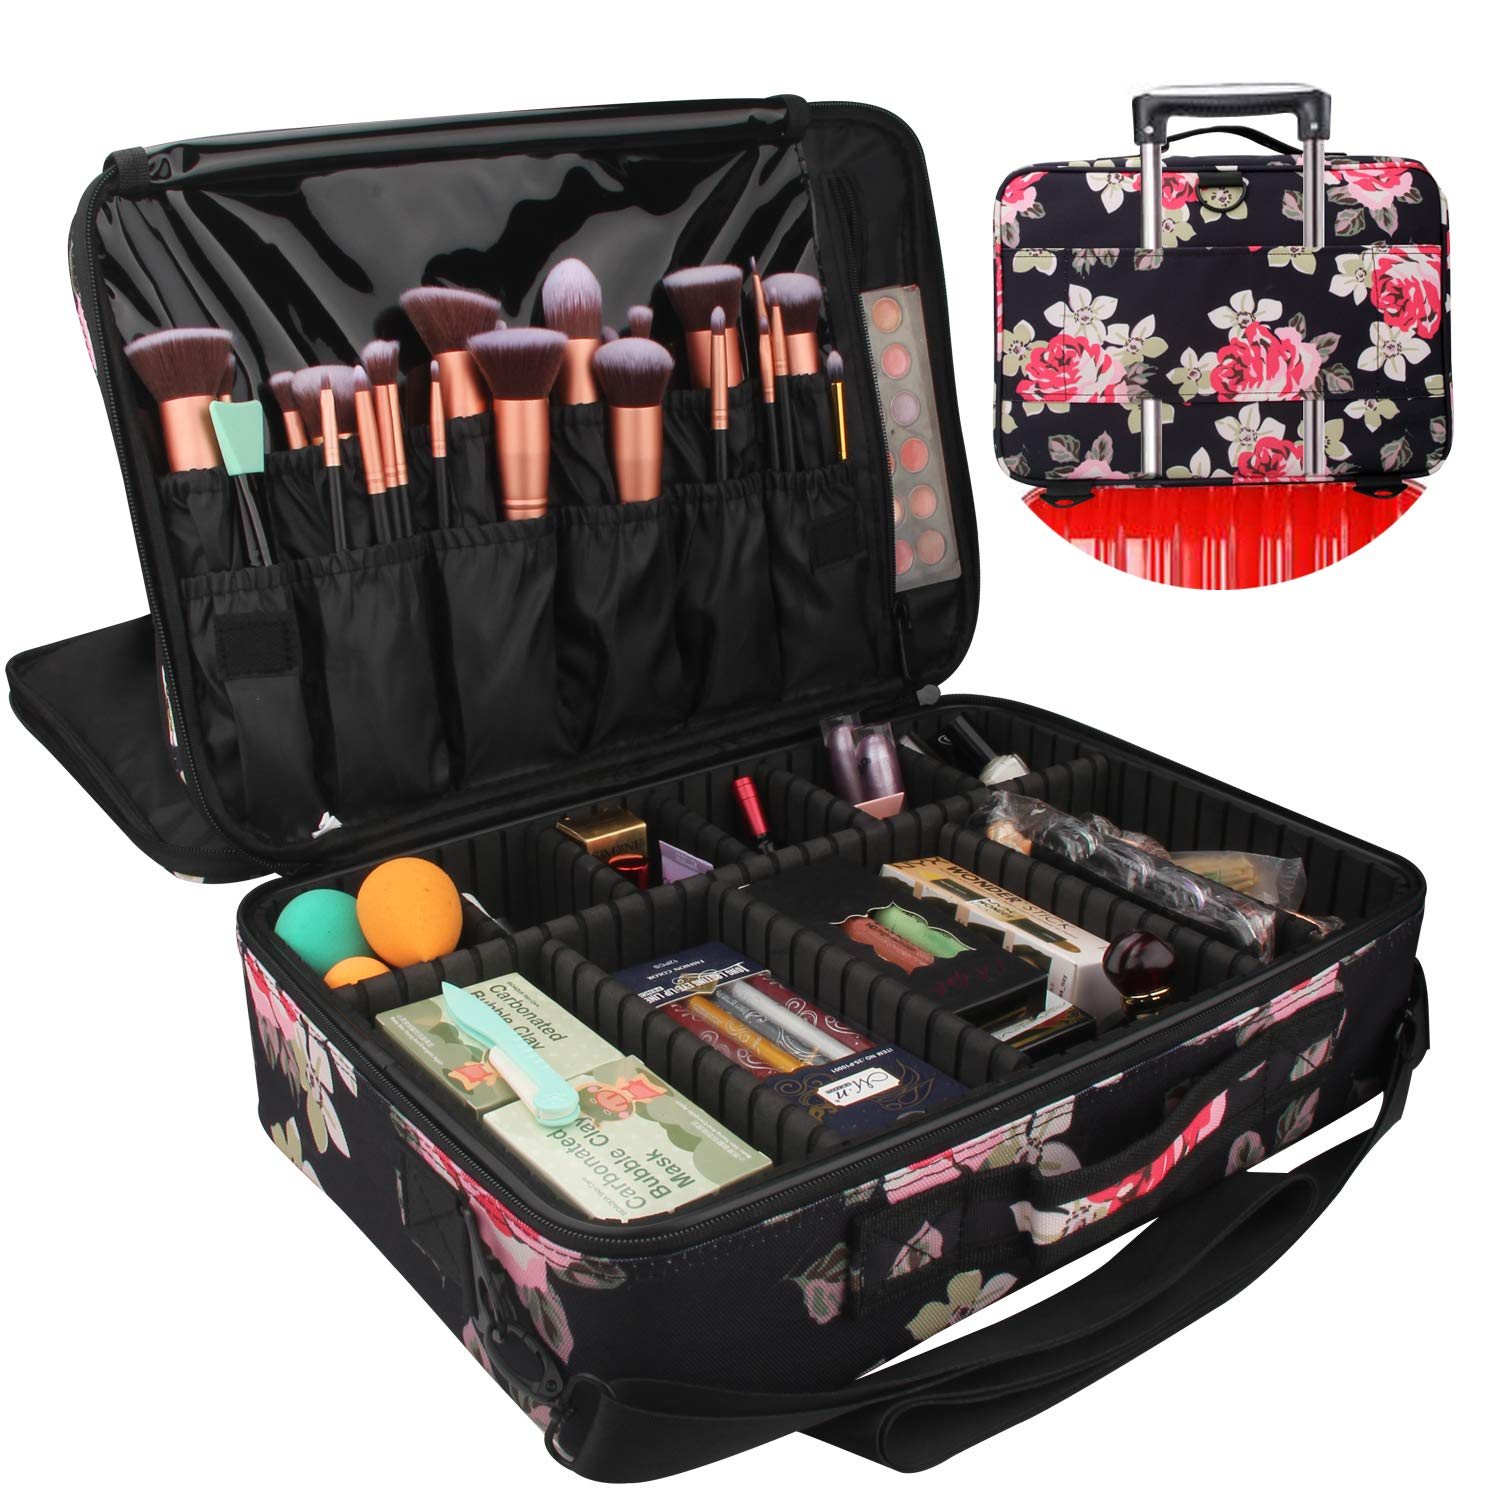 """Relavel Professional Makeup Train Case Cosmetic Bag Brush Organizer and Storage 16.5"""" Travel Make Up Artist Box 3 Layer Large Capacity with Adjustable Strap (Peony Pattern)"""